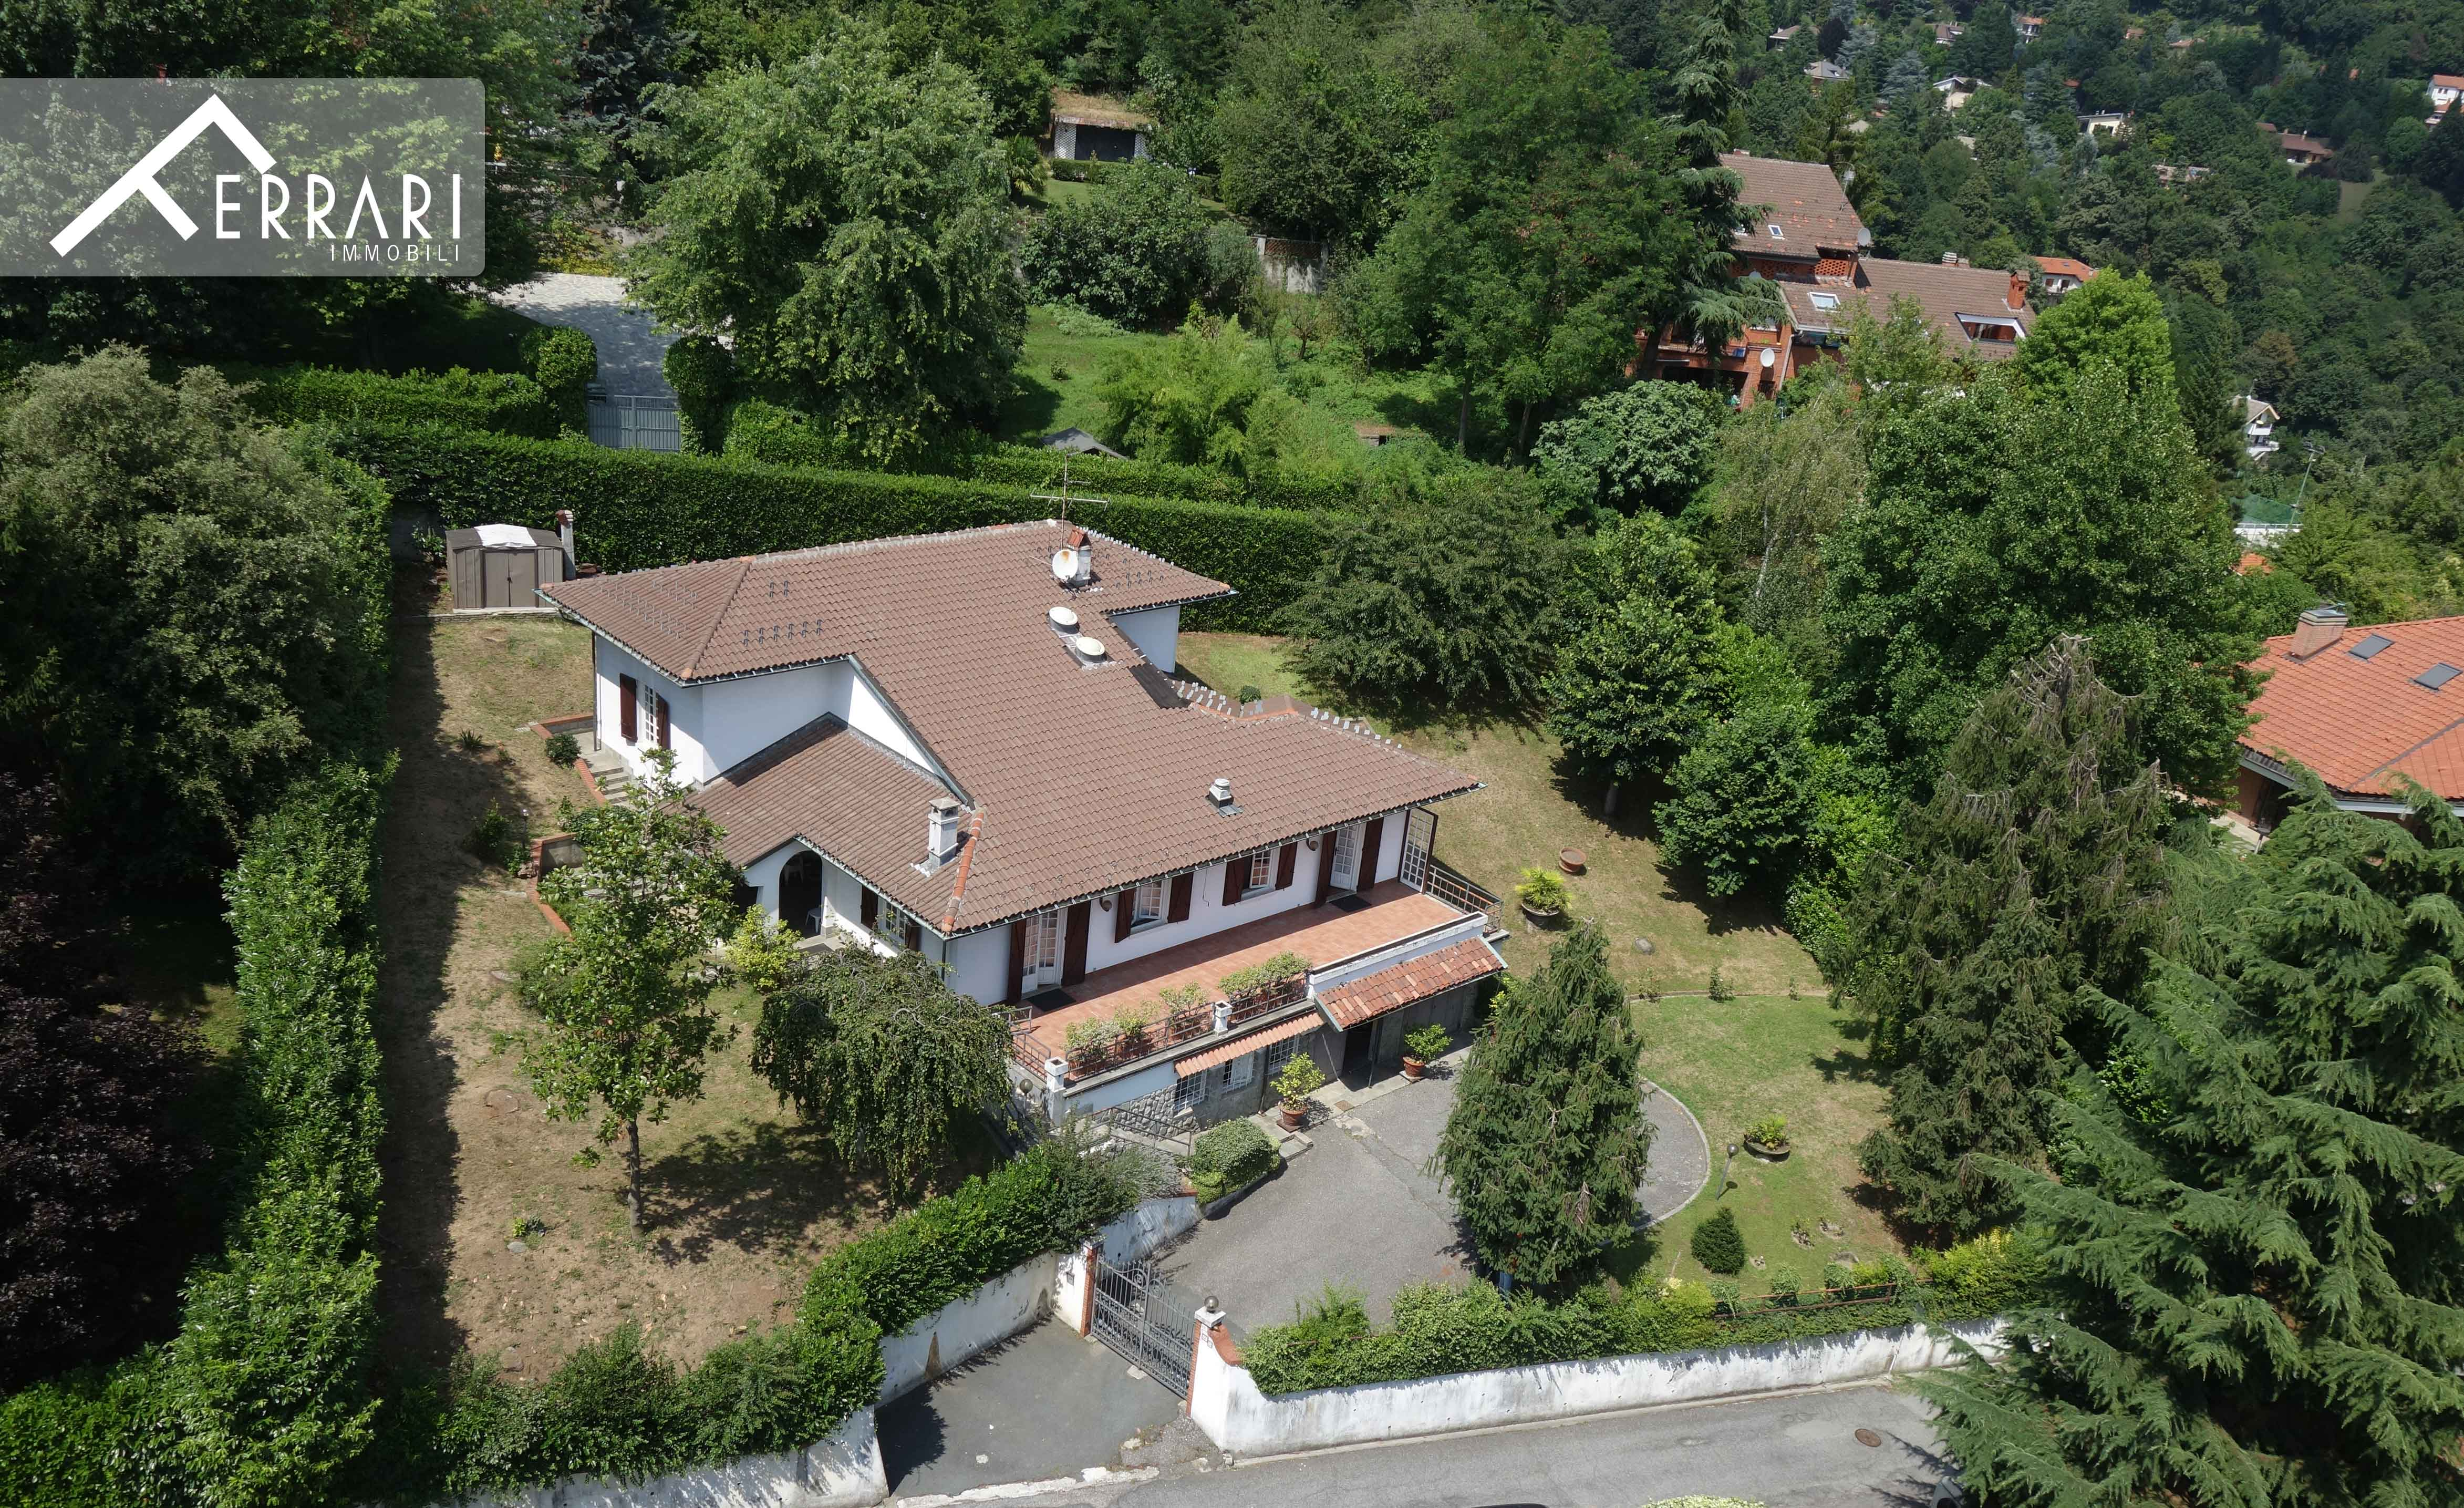 Villa Moncalieri 383 sq m + private garden of 1250 sq m